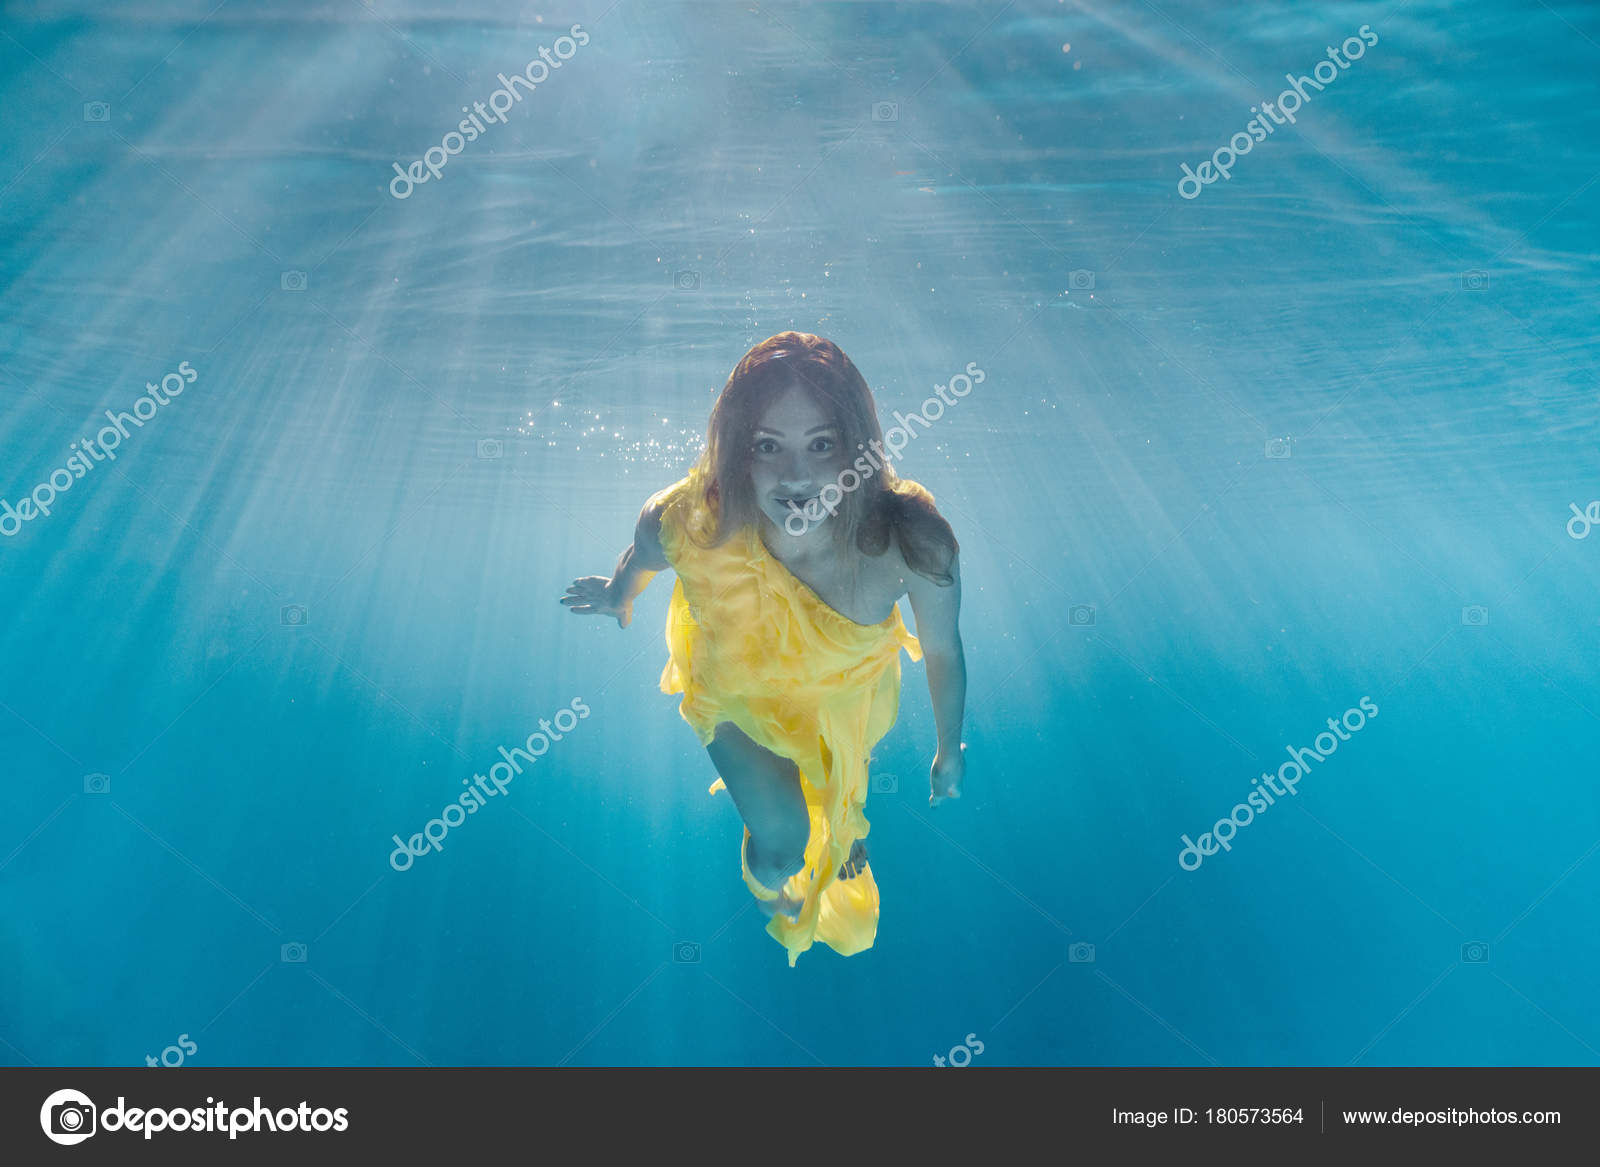 82a9053a05 Underwater Picture Beautiful Young Woman Dress Swimming Swimming Pool —  Stock Photo